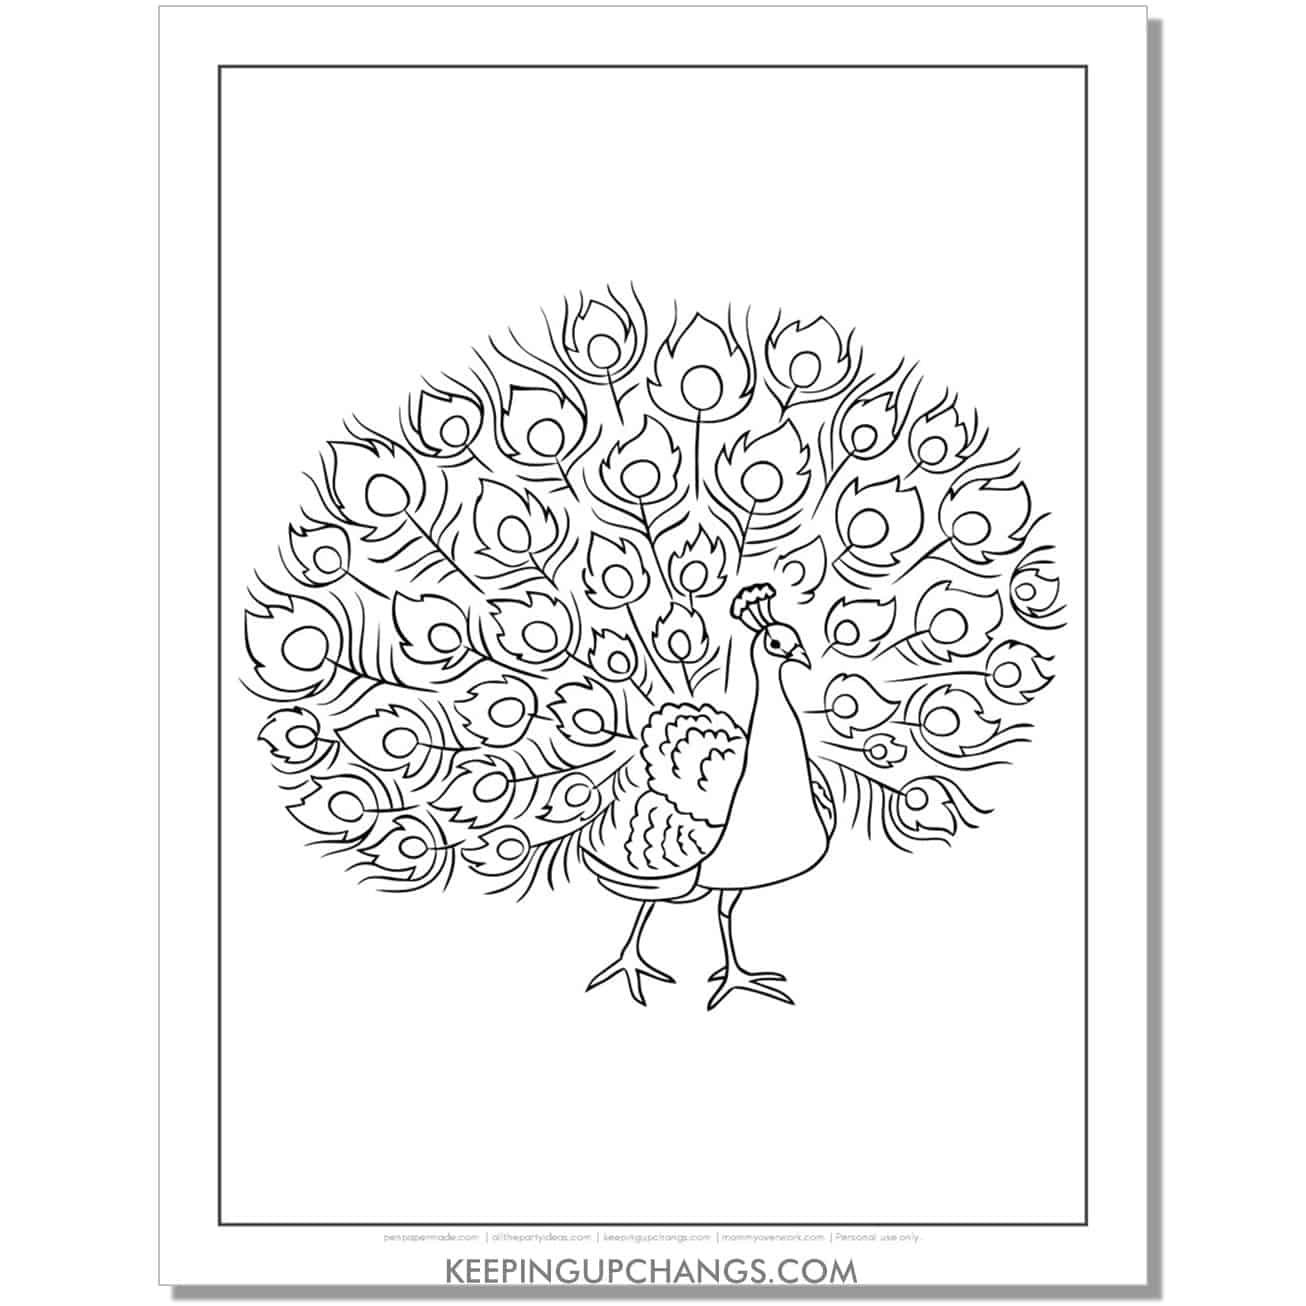 simplified peacock coloring page outline.